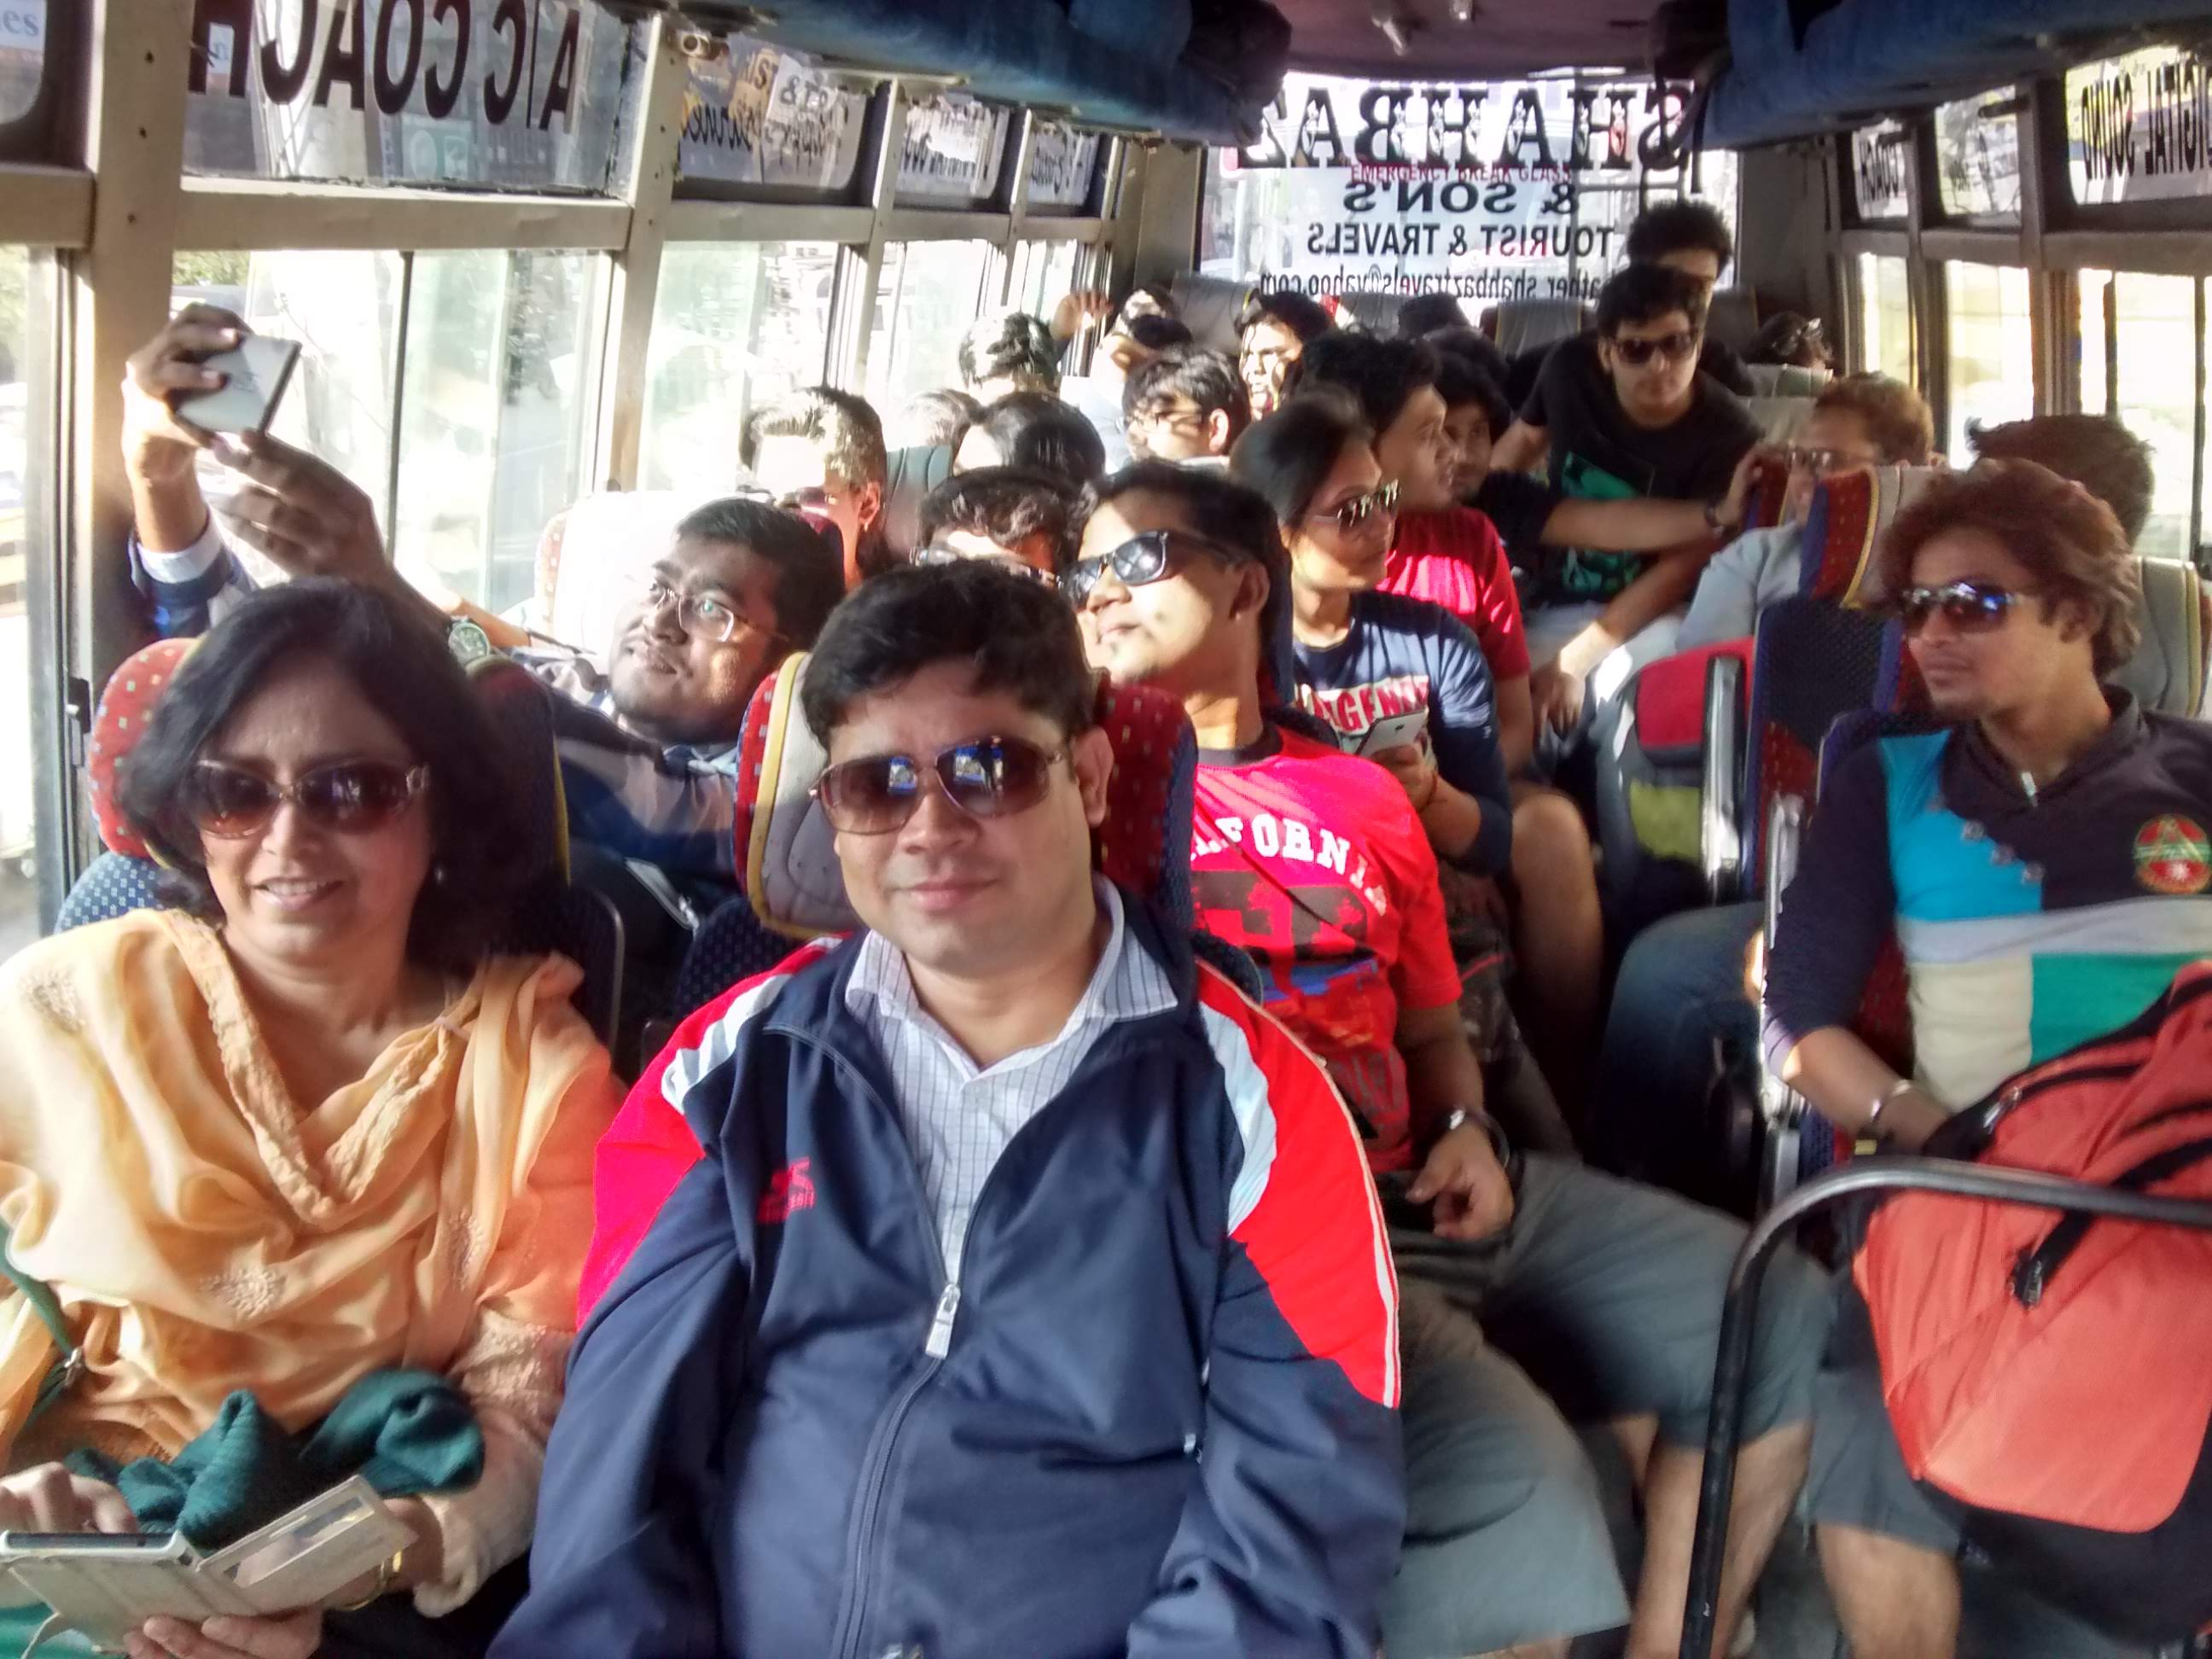 On the way to hotel - Secunderabad